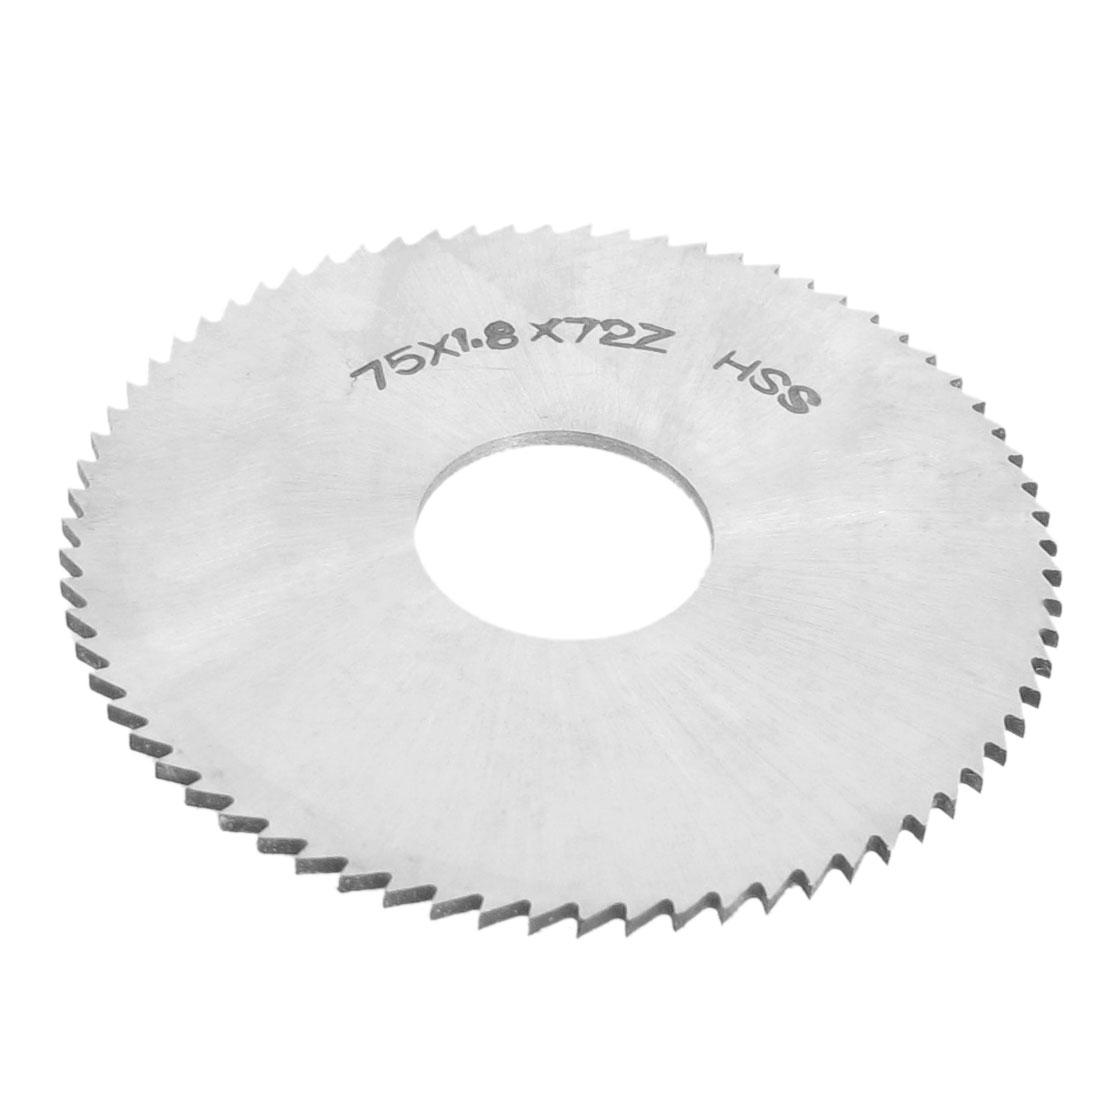 "2 15/16"" x 7/8"" x 1/14"" 72 Teeth HSS Incision Milling Slotting Saws Cutter"